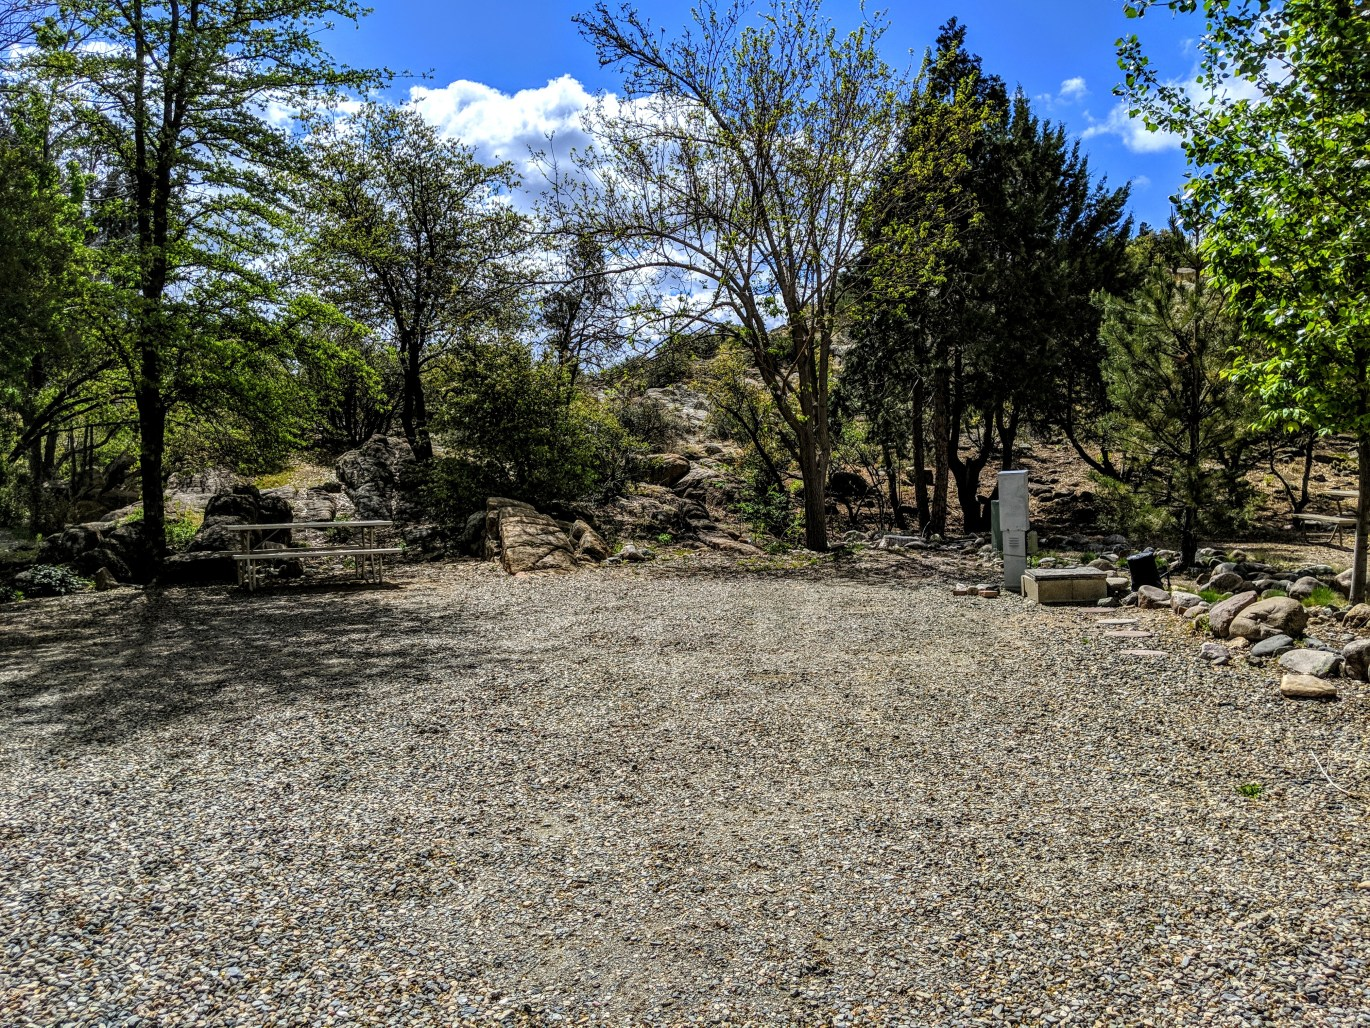 Campsite 56E at Point of Rocks RV Campground